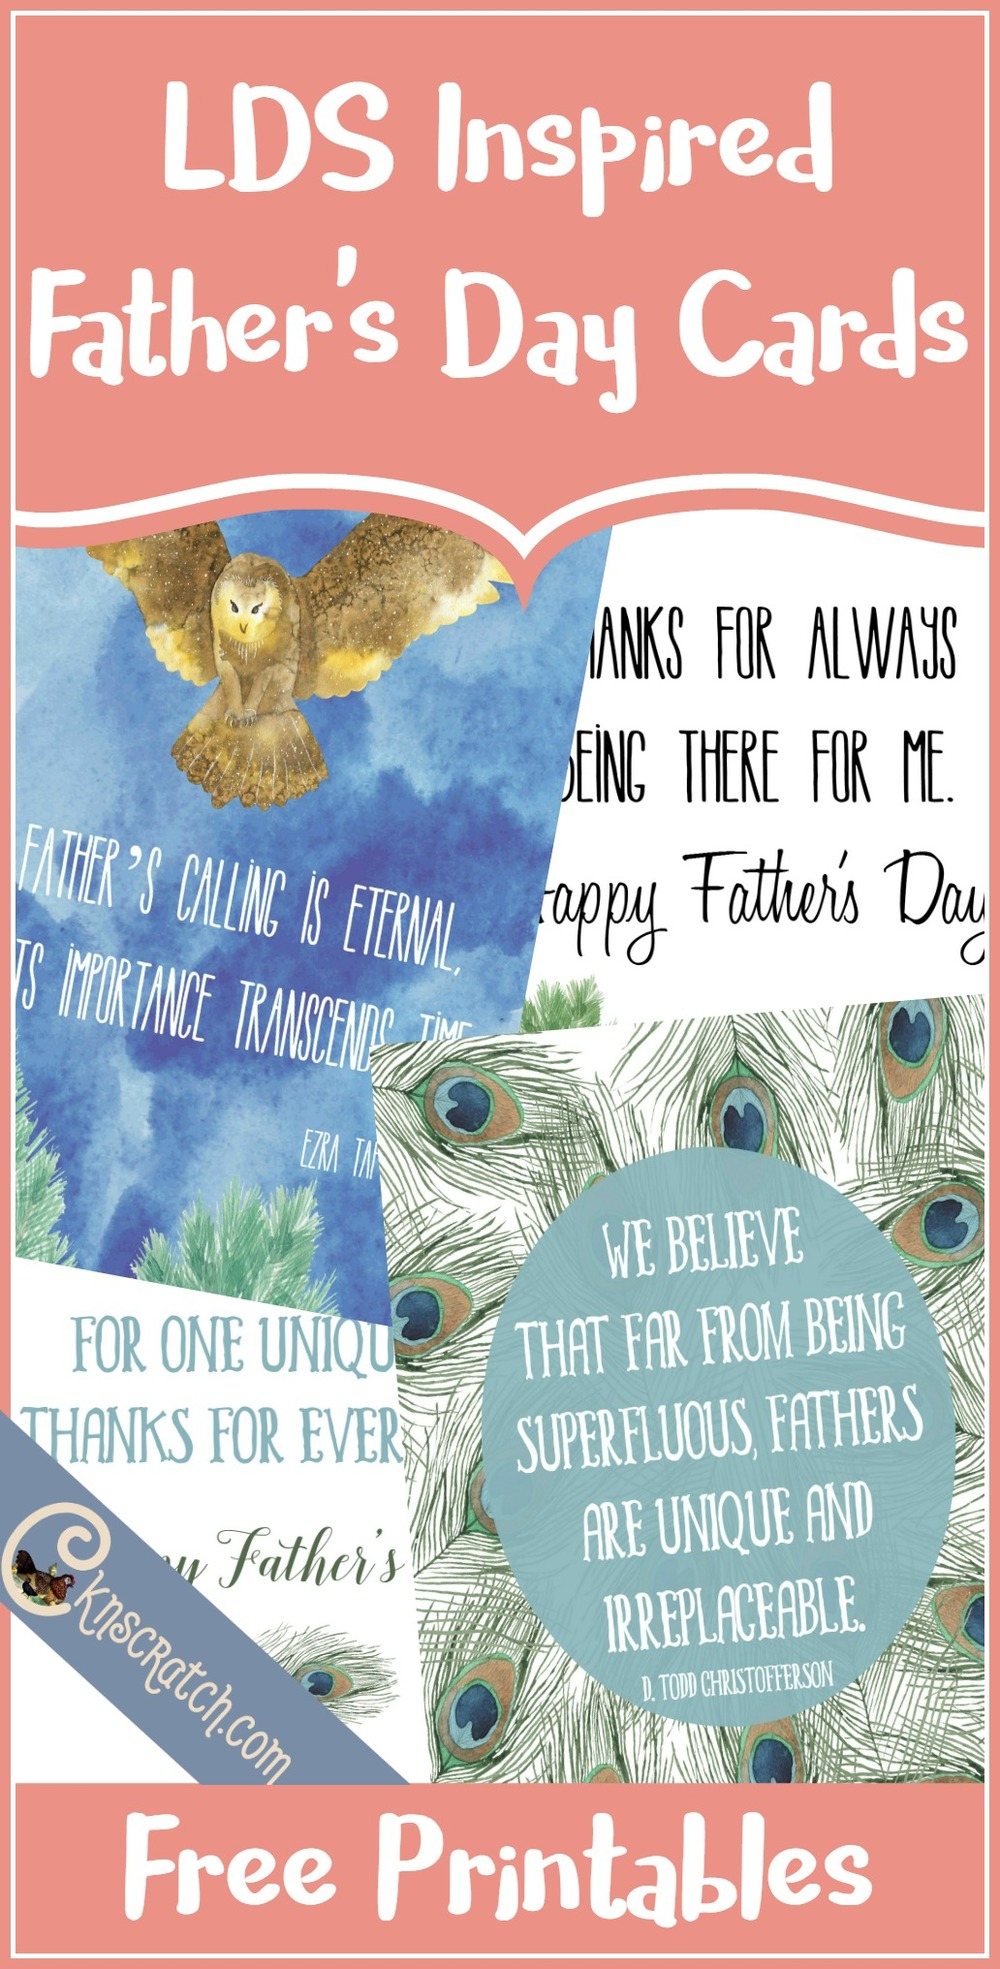 These are great! Free LDS inspired Father's Day cards